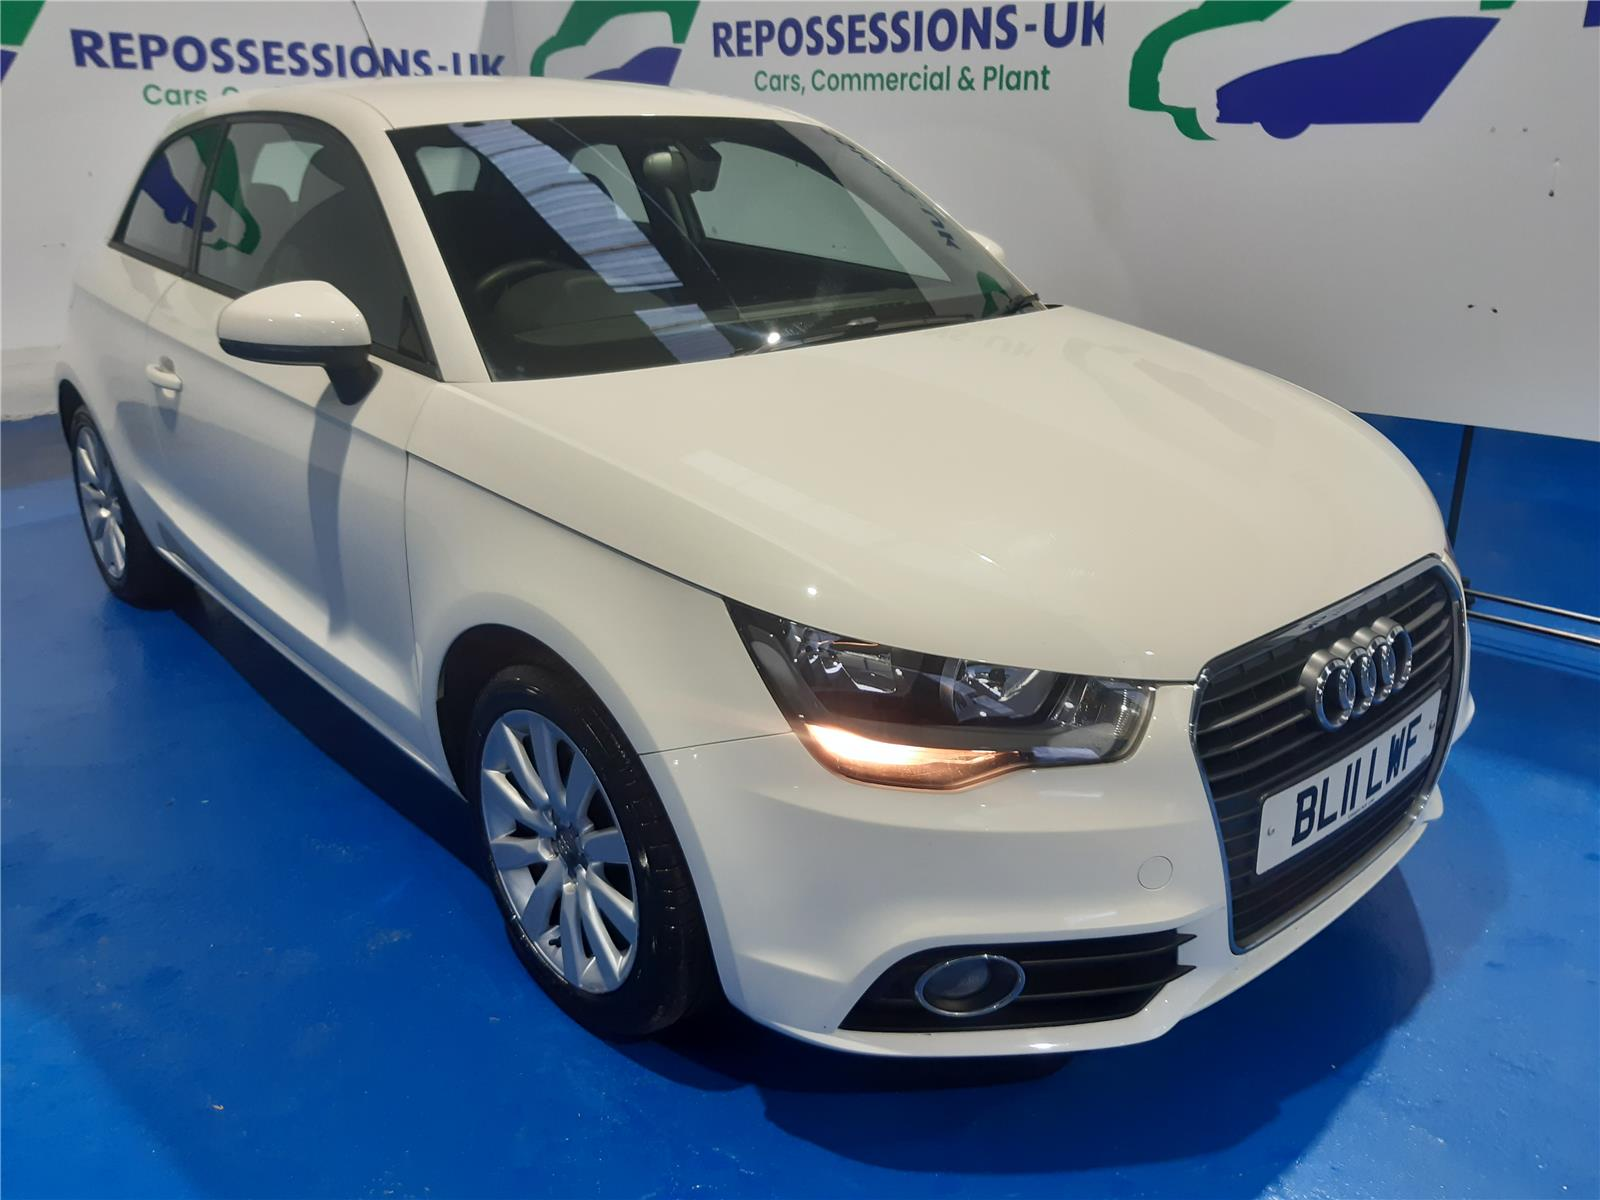 2011 AUDI A1 TFSI SPORT 1390 PETROL MANUAL 6 Speed 3 DOOR HATCHBACK